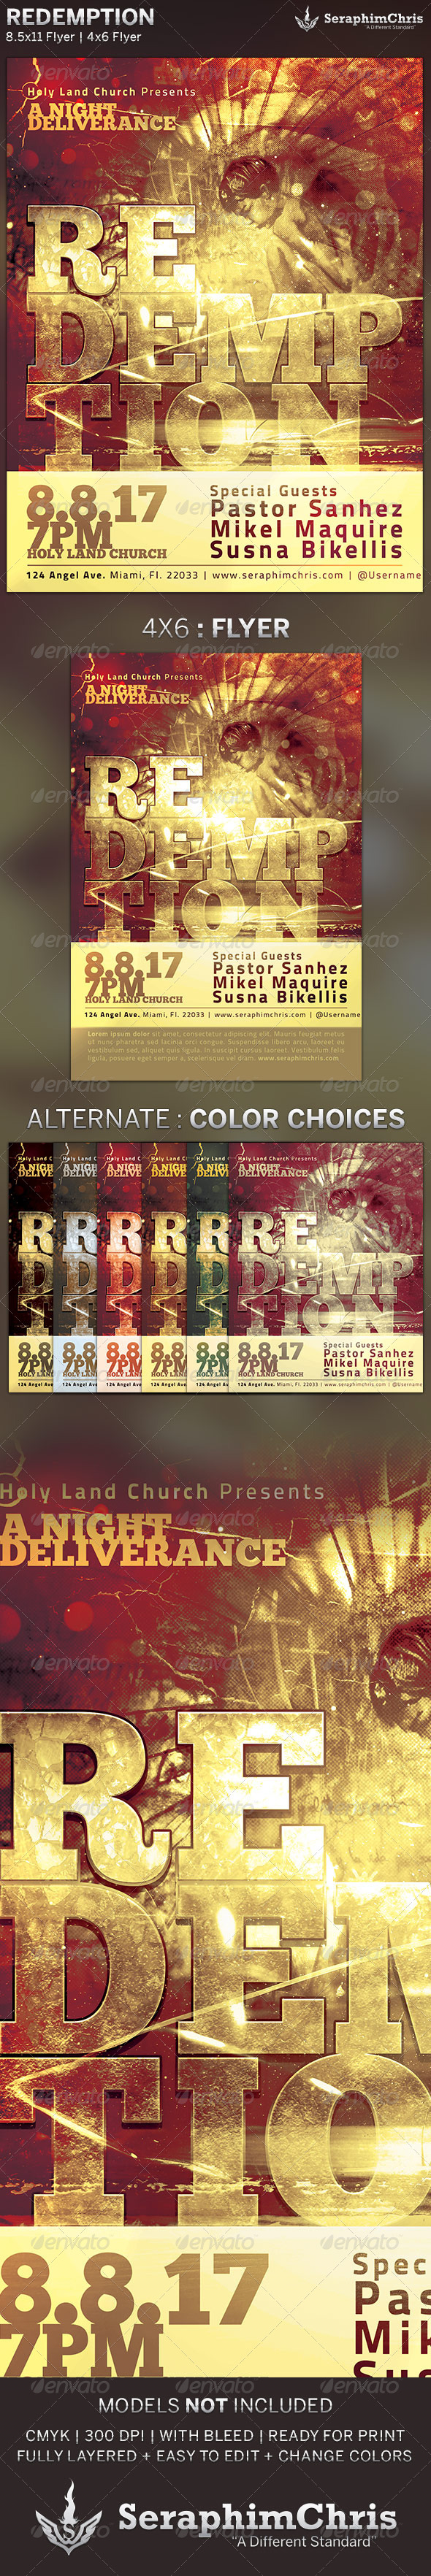 Redemption Church Flyer Template - Church Flyers